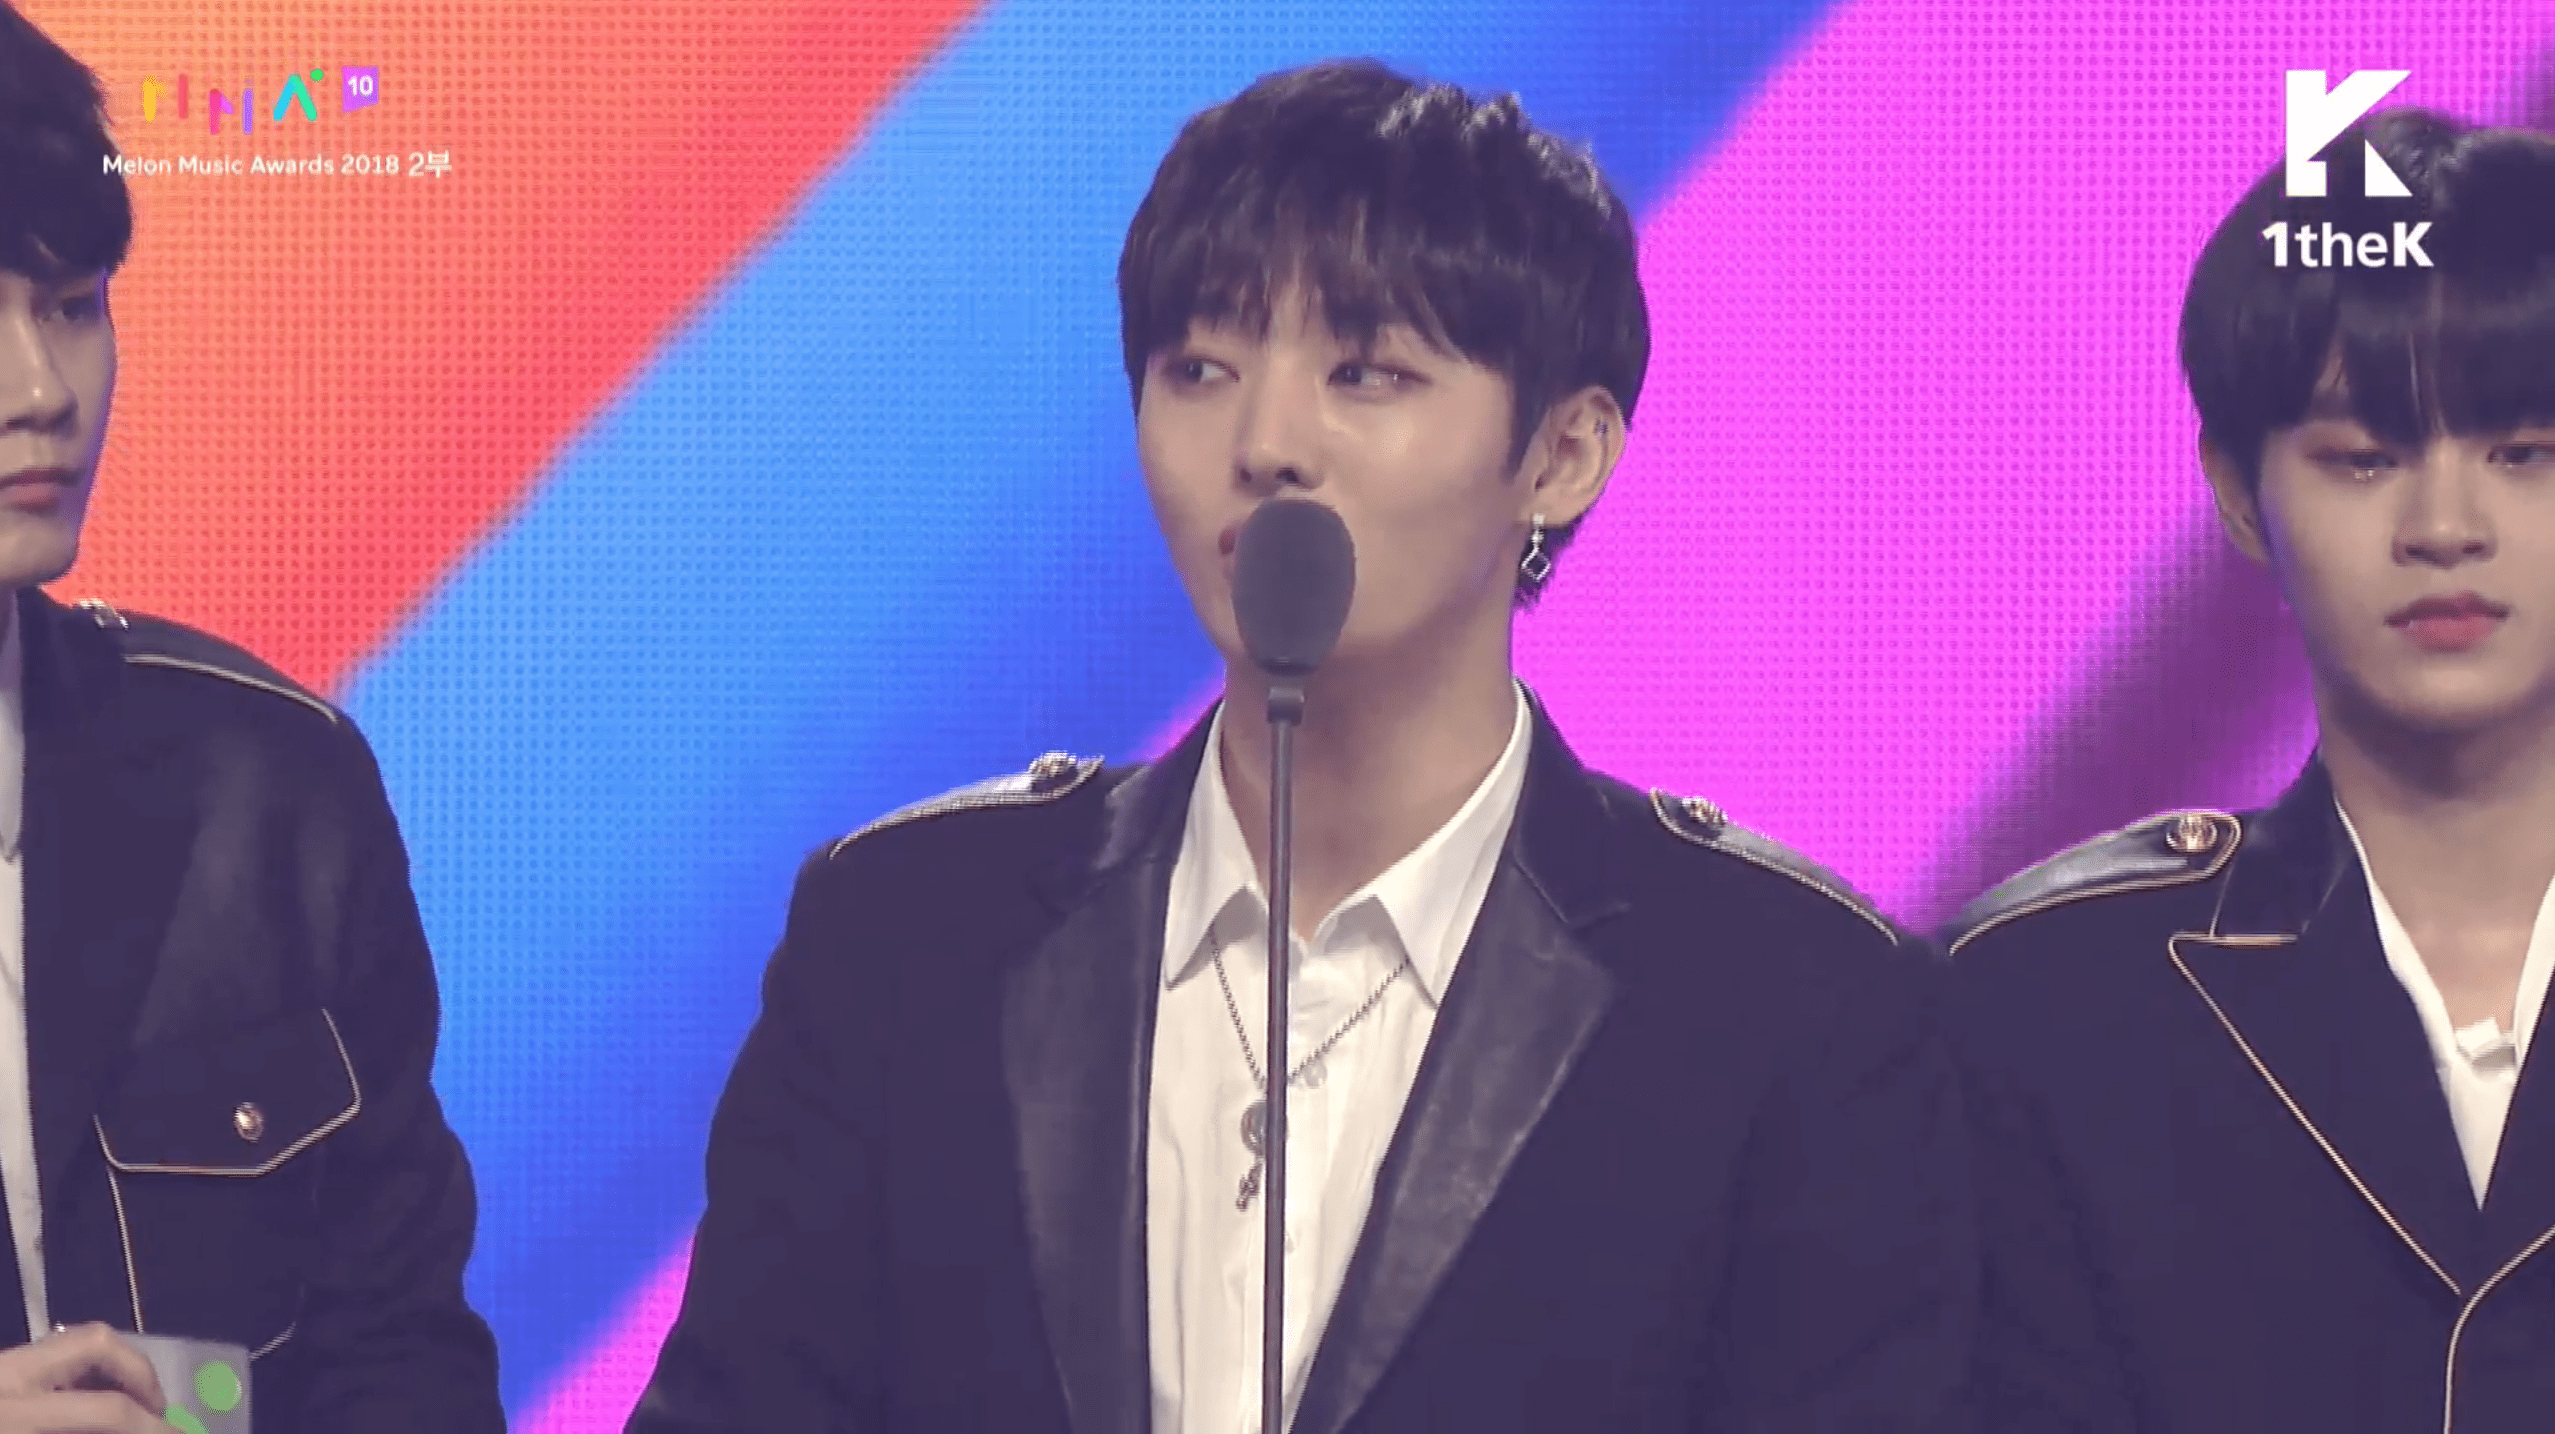 Winners Of The 2018 Melon Music Awards | Soompi